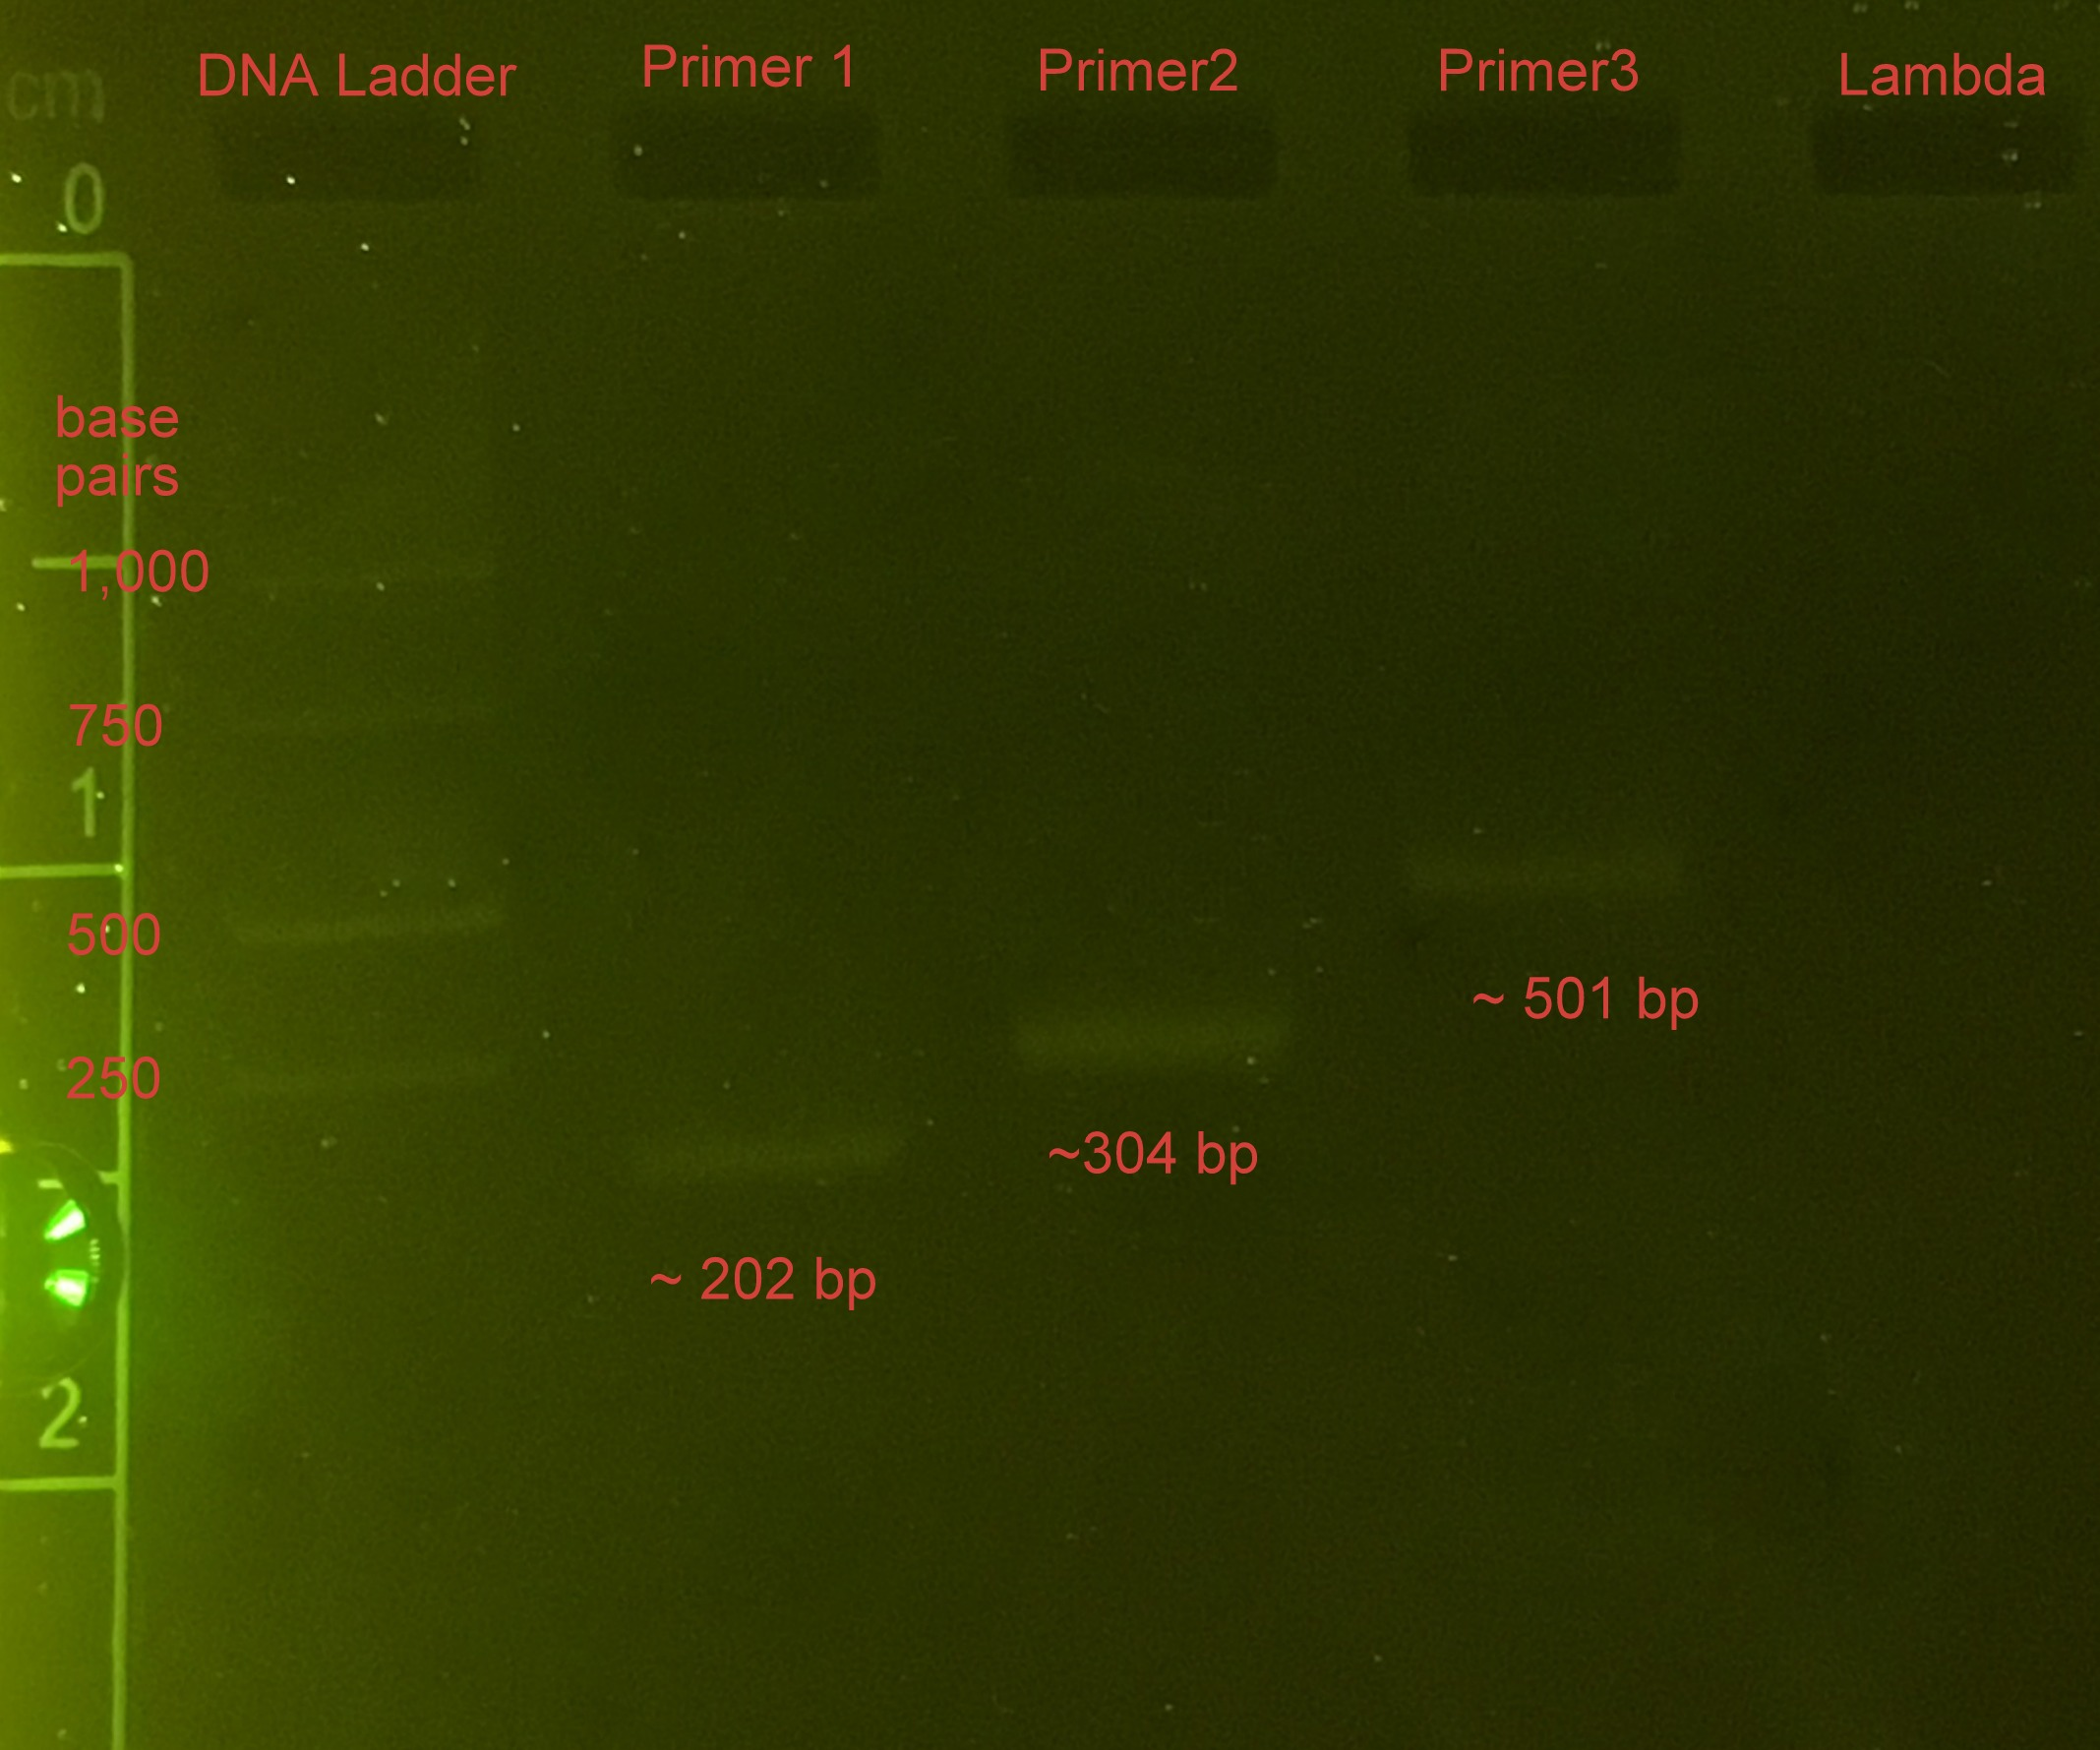 Validation run gel image. Lamda DNA was successfully amplified using our system!